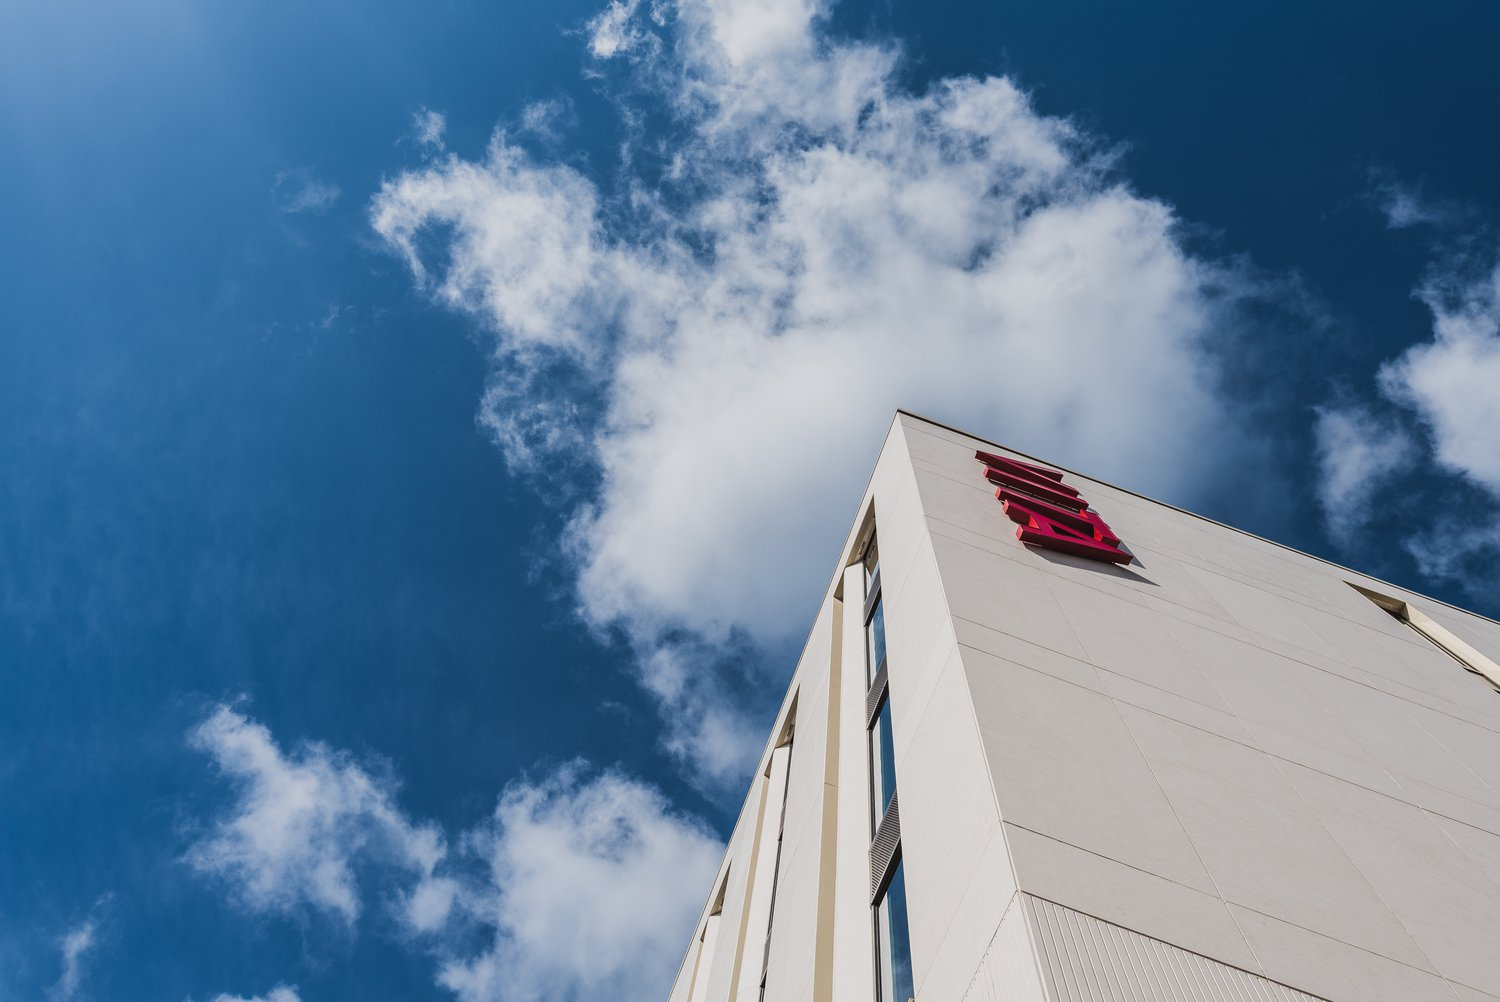 Low angle shot of VITA Birmingham, corner of the building against a blue sky with clouds